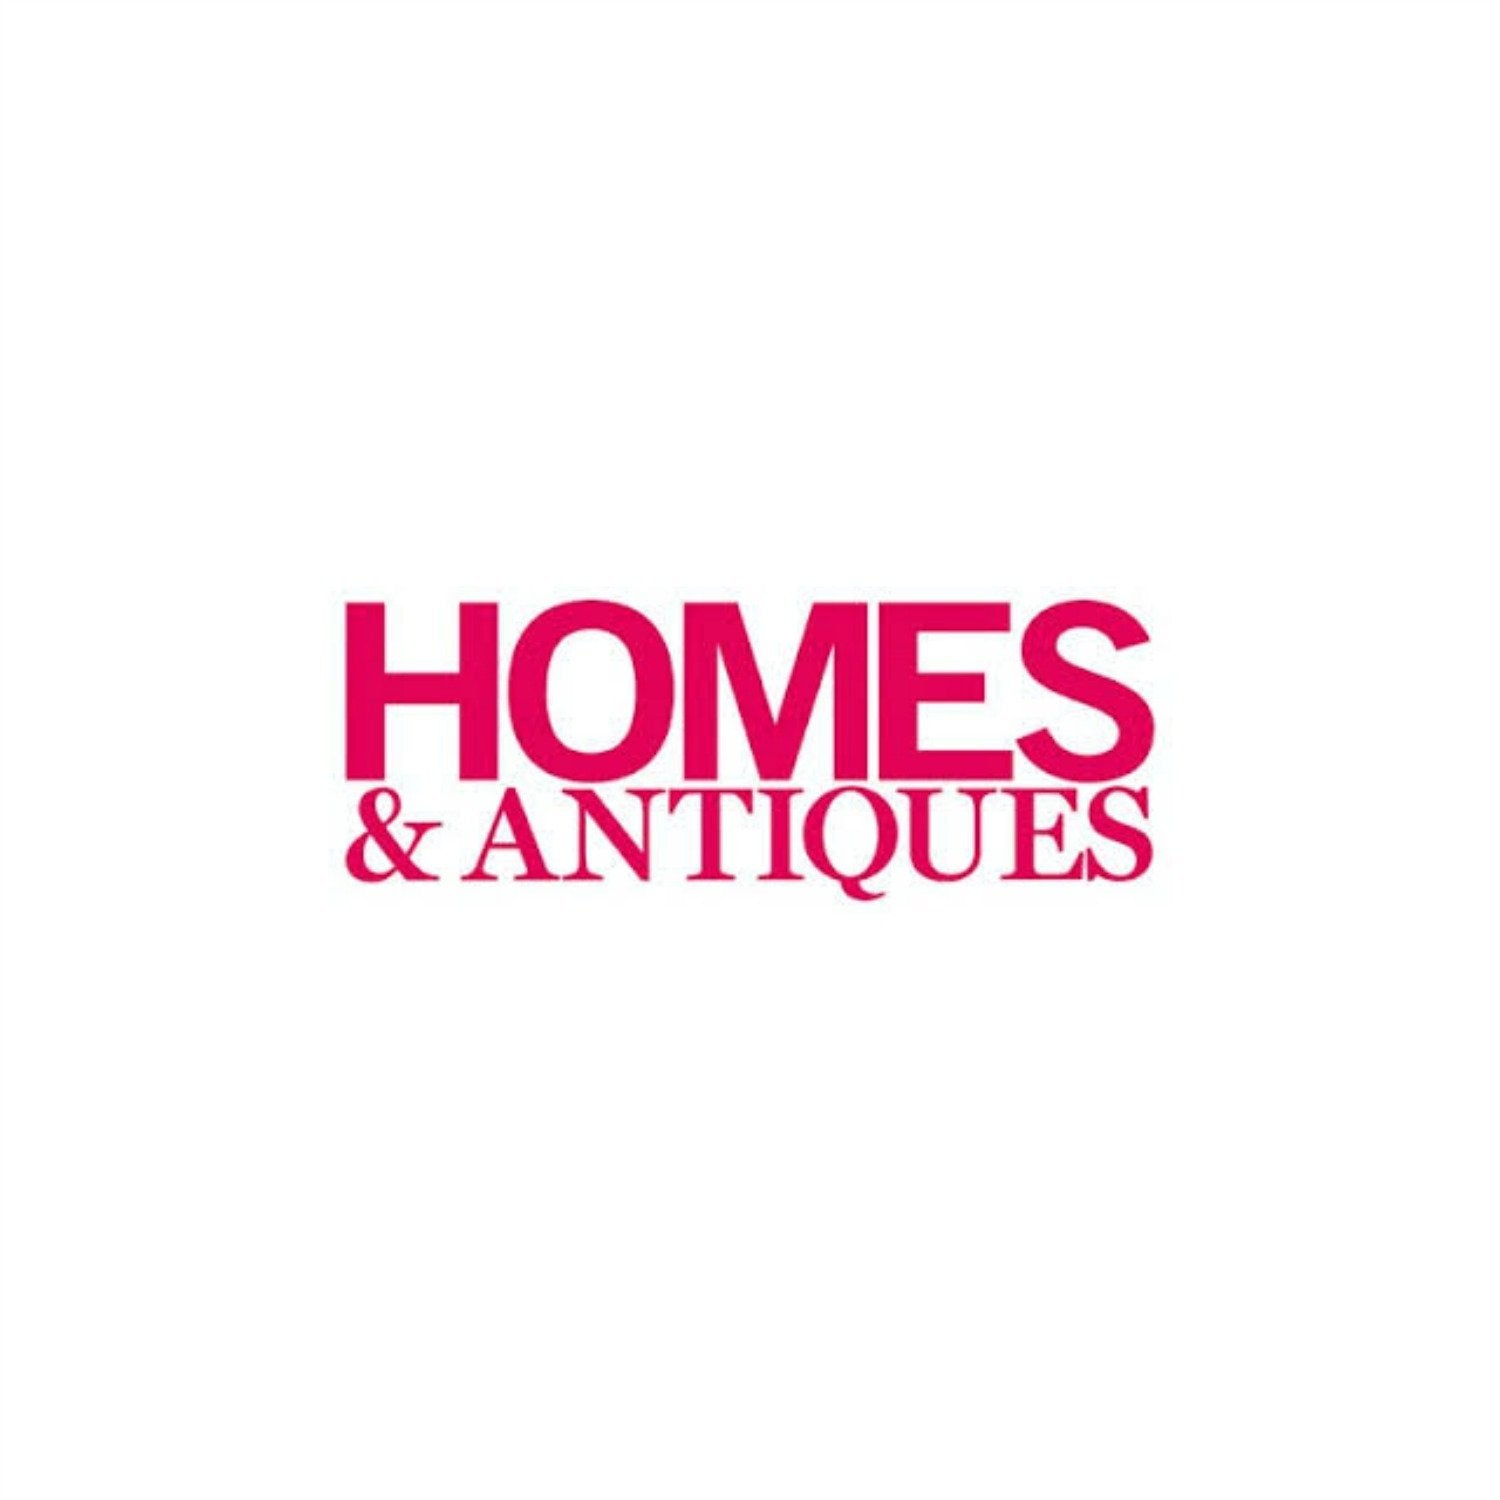 Homes & Antiques features Dar Leone April 2019